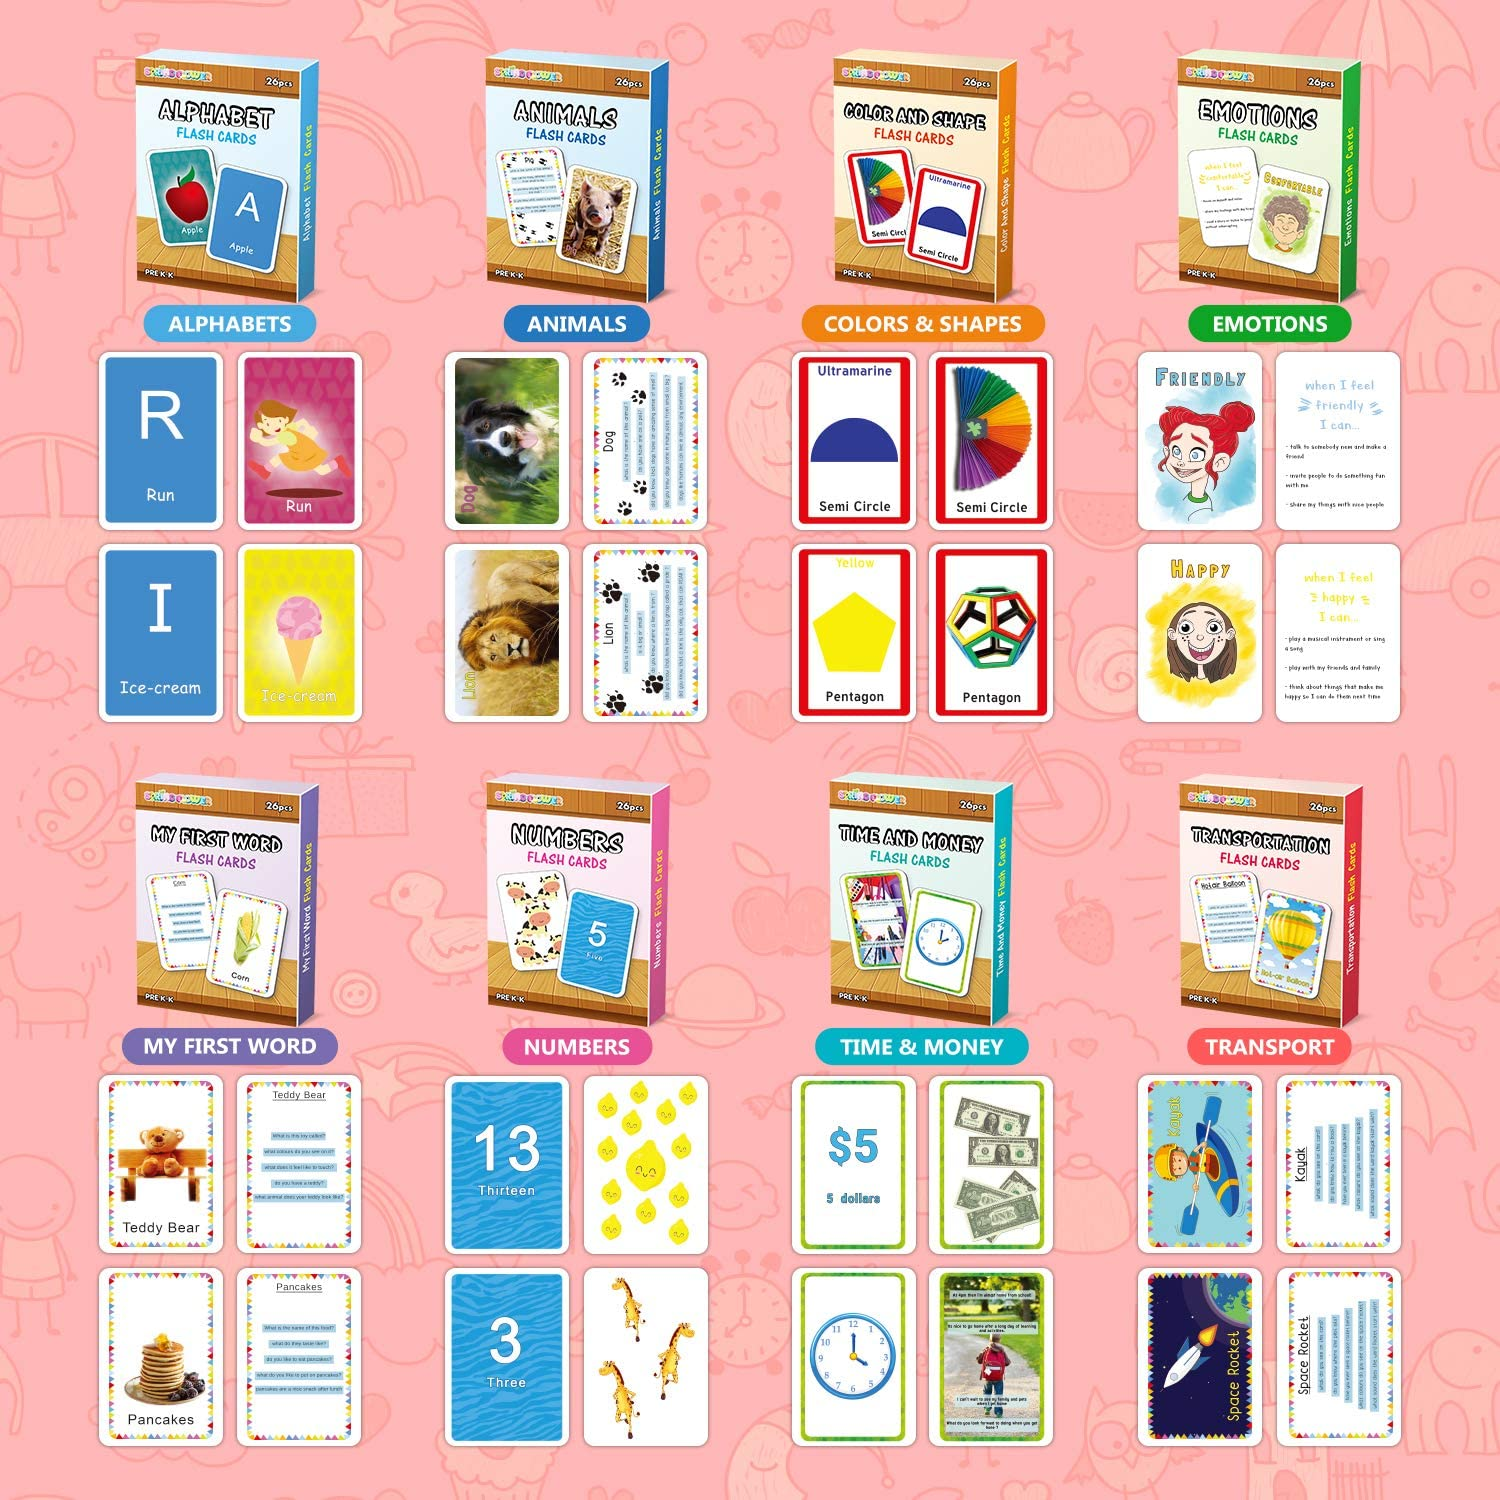 Kindergarten,Kids 2-6 Years Animals,Emotions,Transport,Time /& Money,208 Flash Cards for Prek Preschool Learning SpringFlower Flash Cards Set of 8-Numbers,Alphabets,First Sight Words,Colors /& Shapes